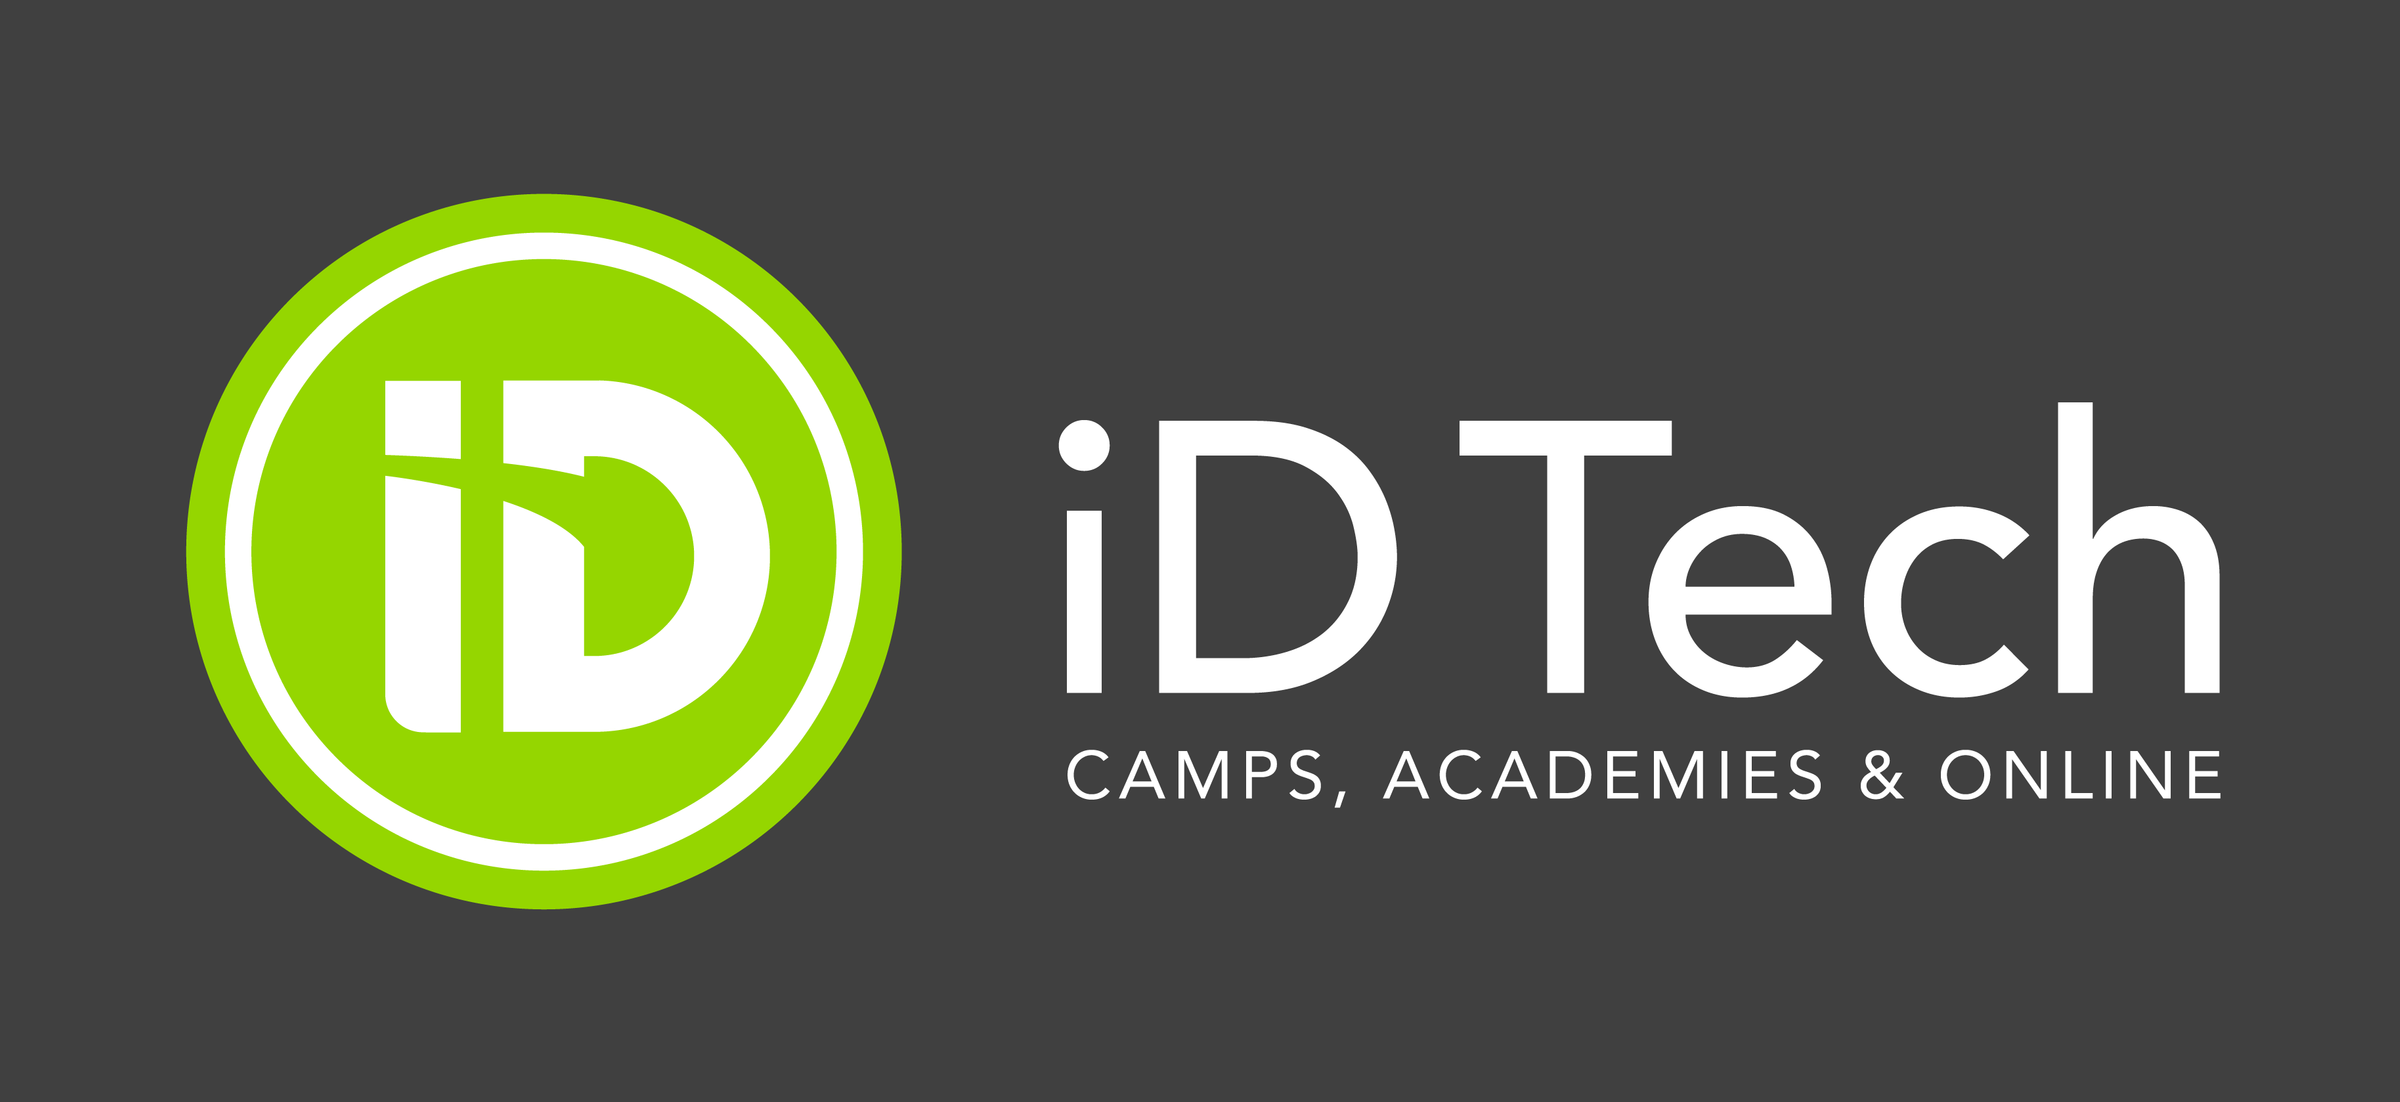 iD Tech Camps: #1 in STEM Education - Held at Manchester Metropolitan University